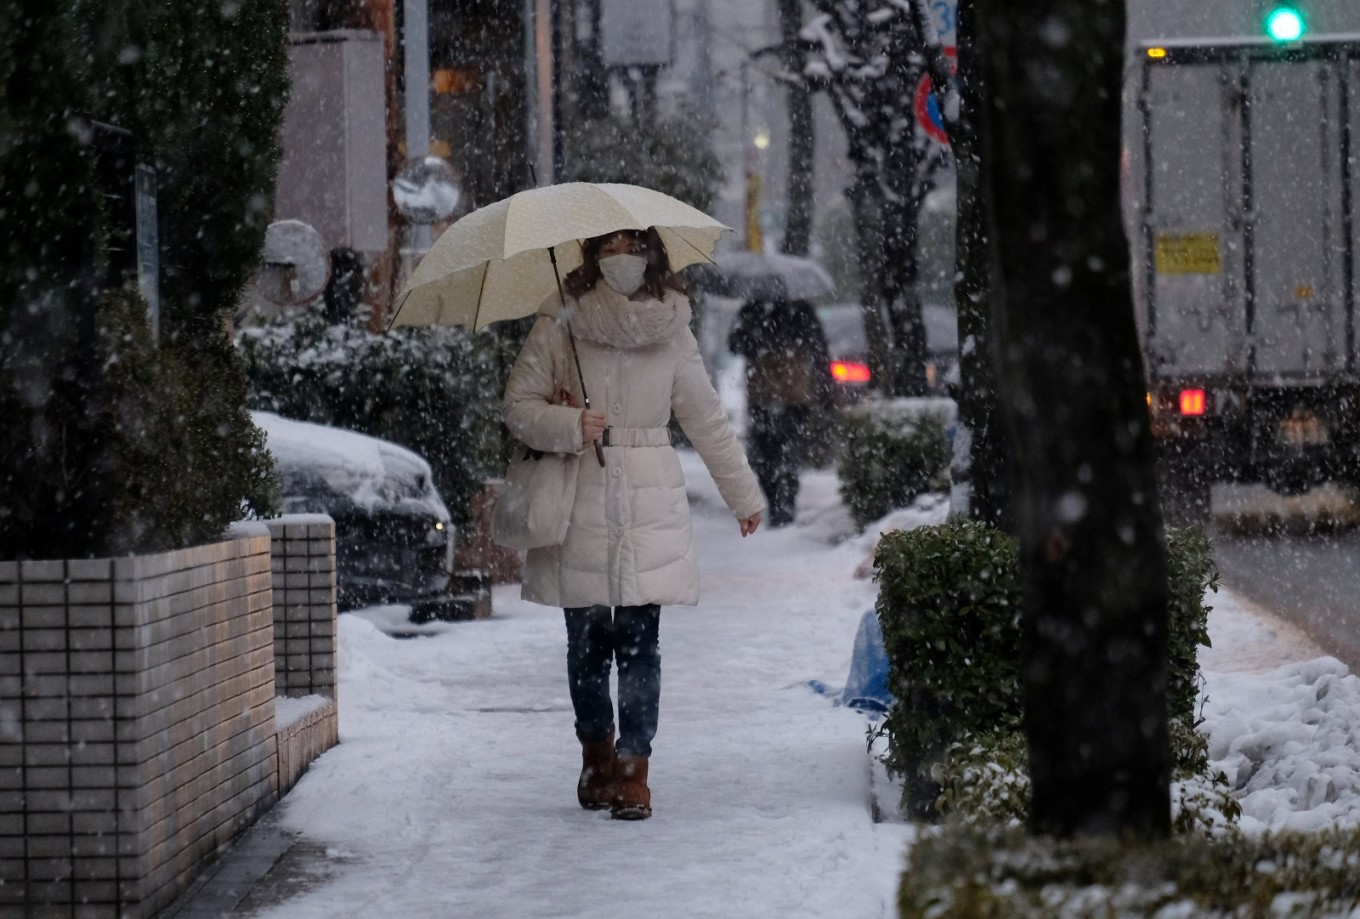 Japan economy grows for 8th straight quarter, longest since 1980s